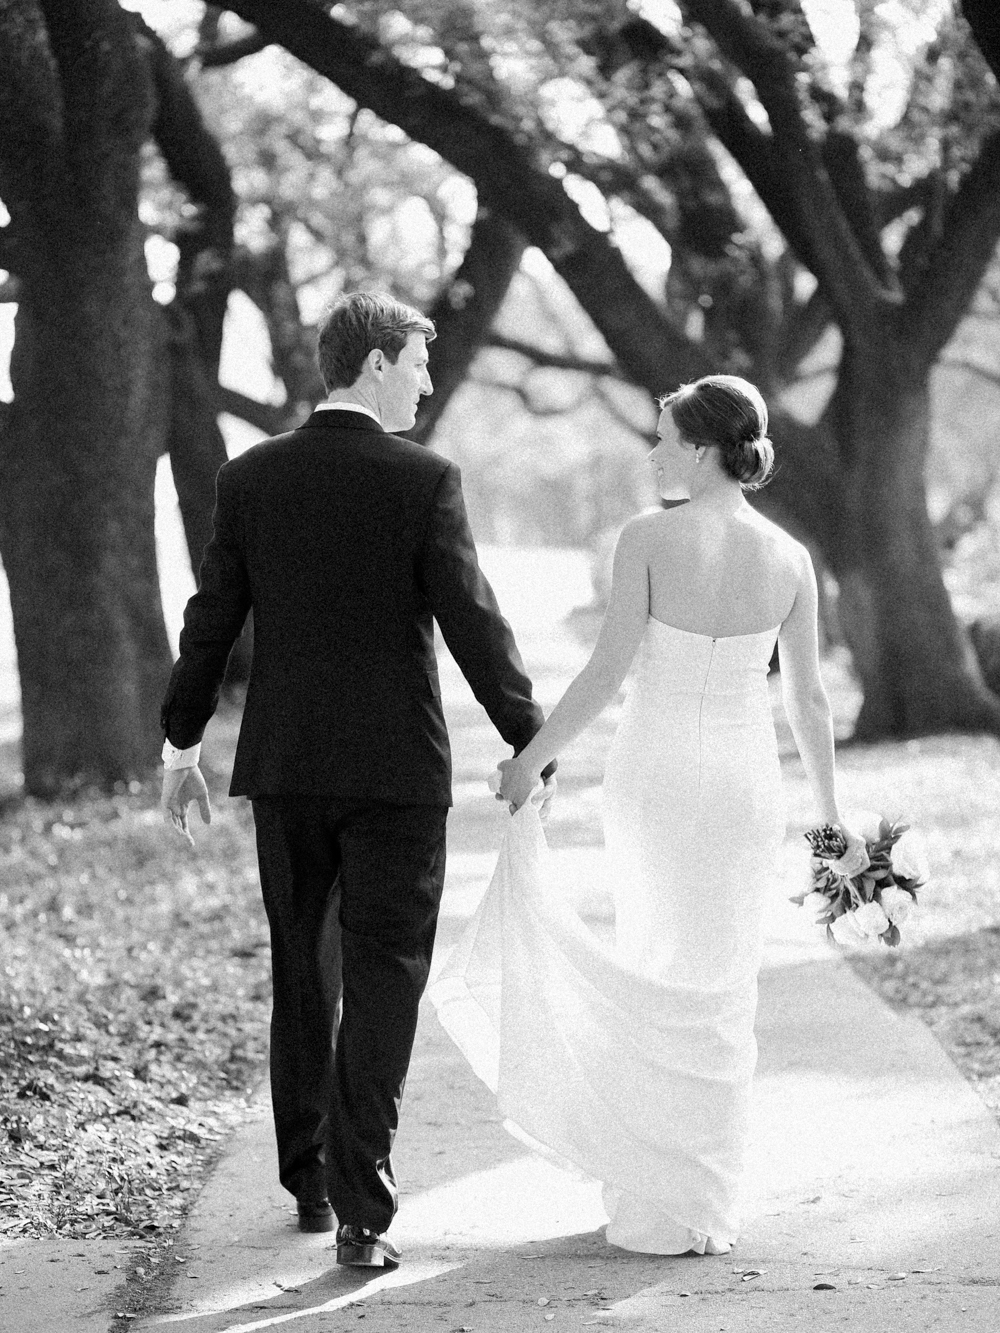 Christine Gosch - destination film photographer - houston wedding photographer - fine art film photographer - elopement photographer - destination wedding - understated wedding - simple beautiful wedding photography-73.jpg